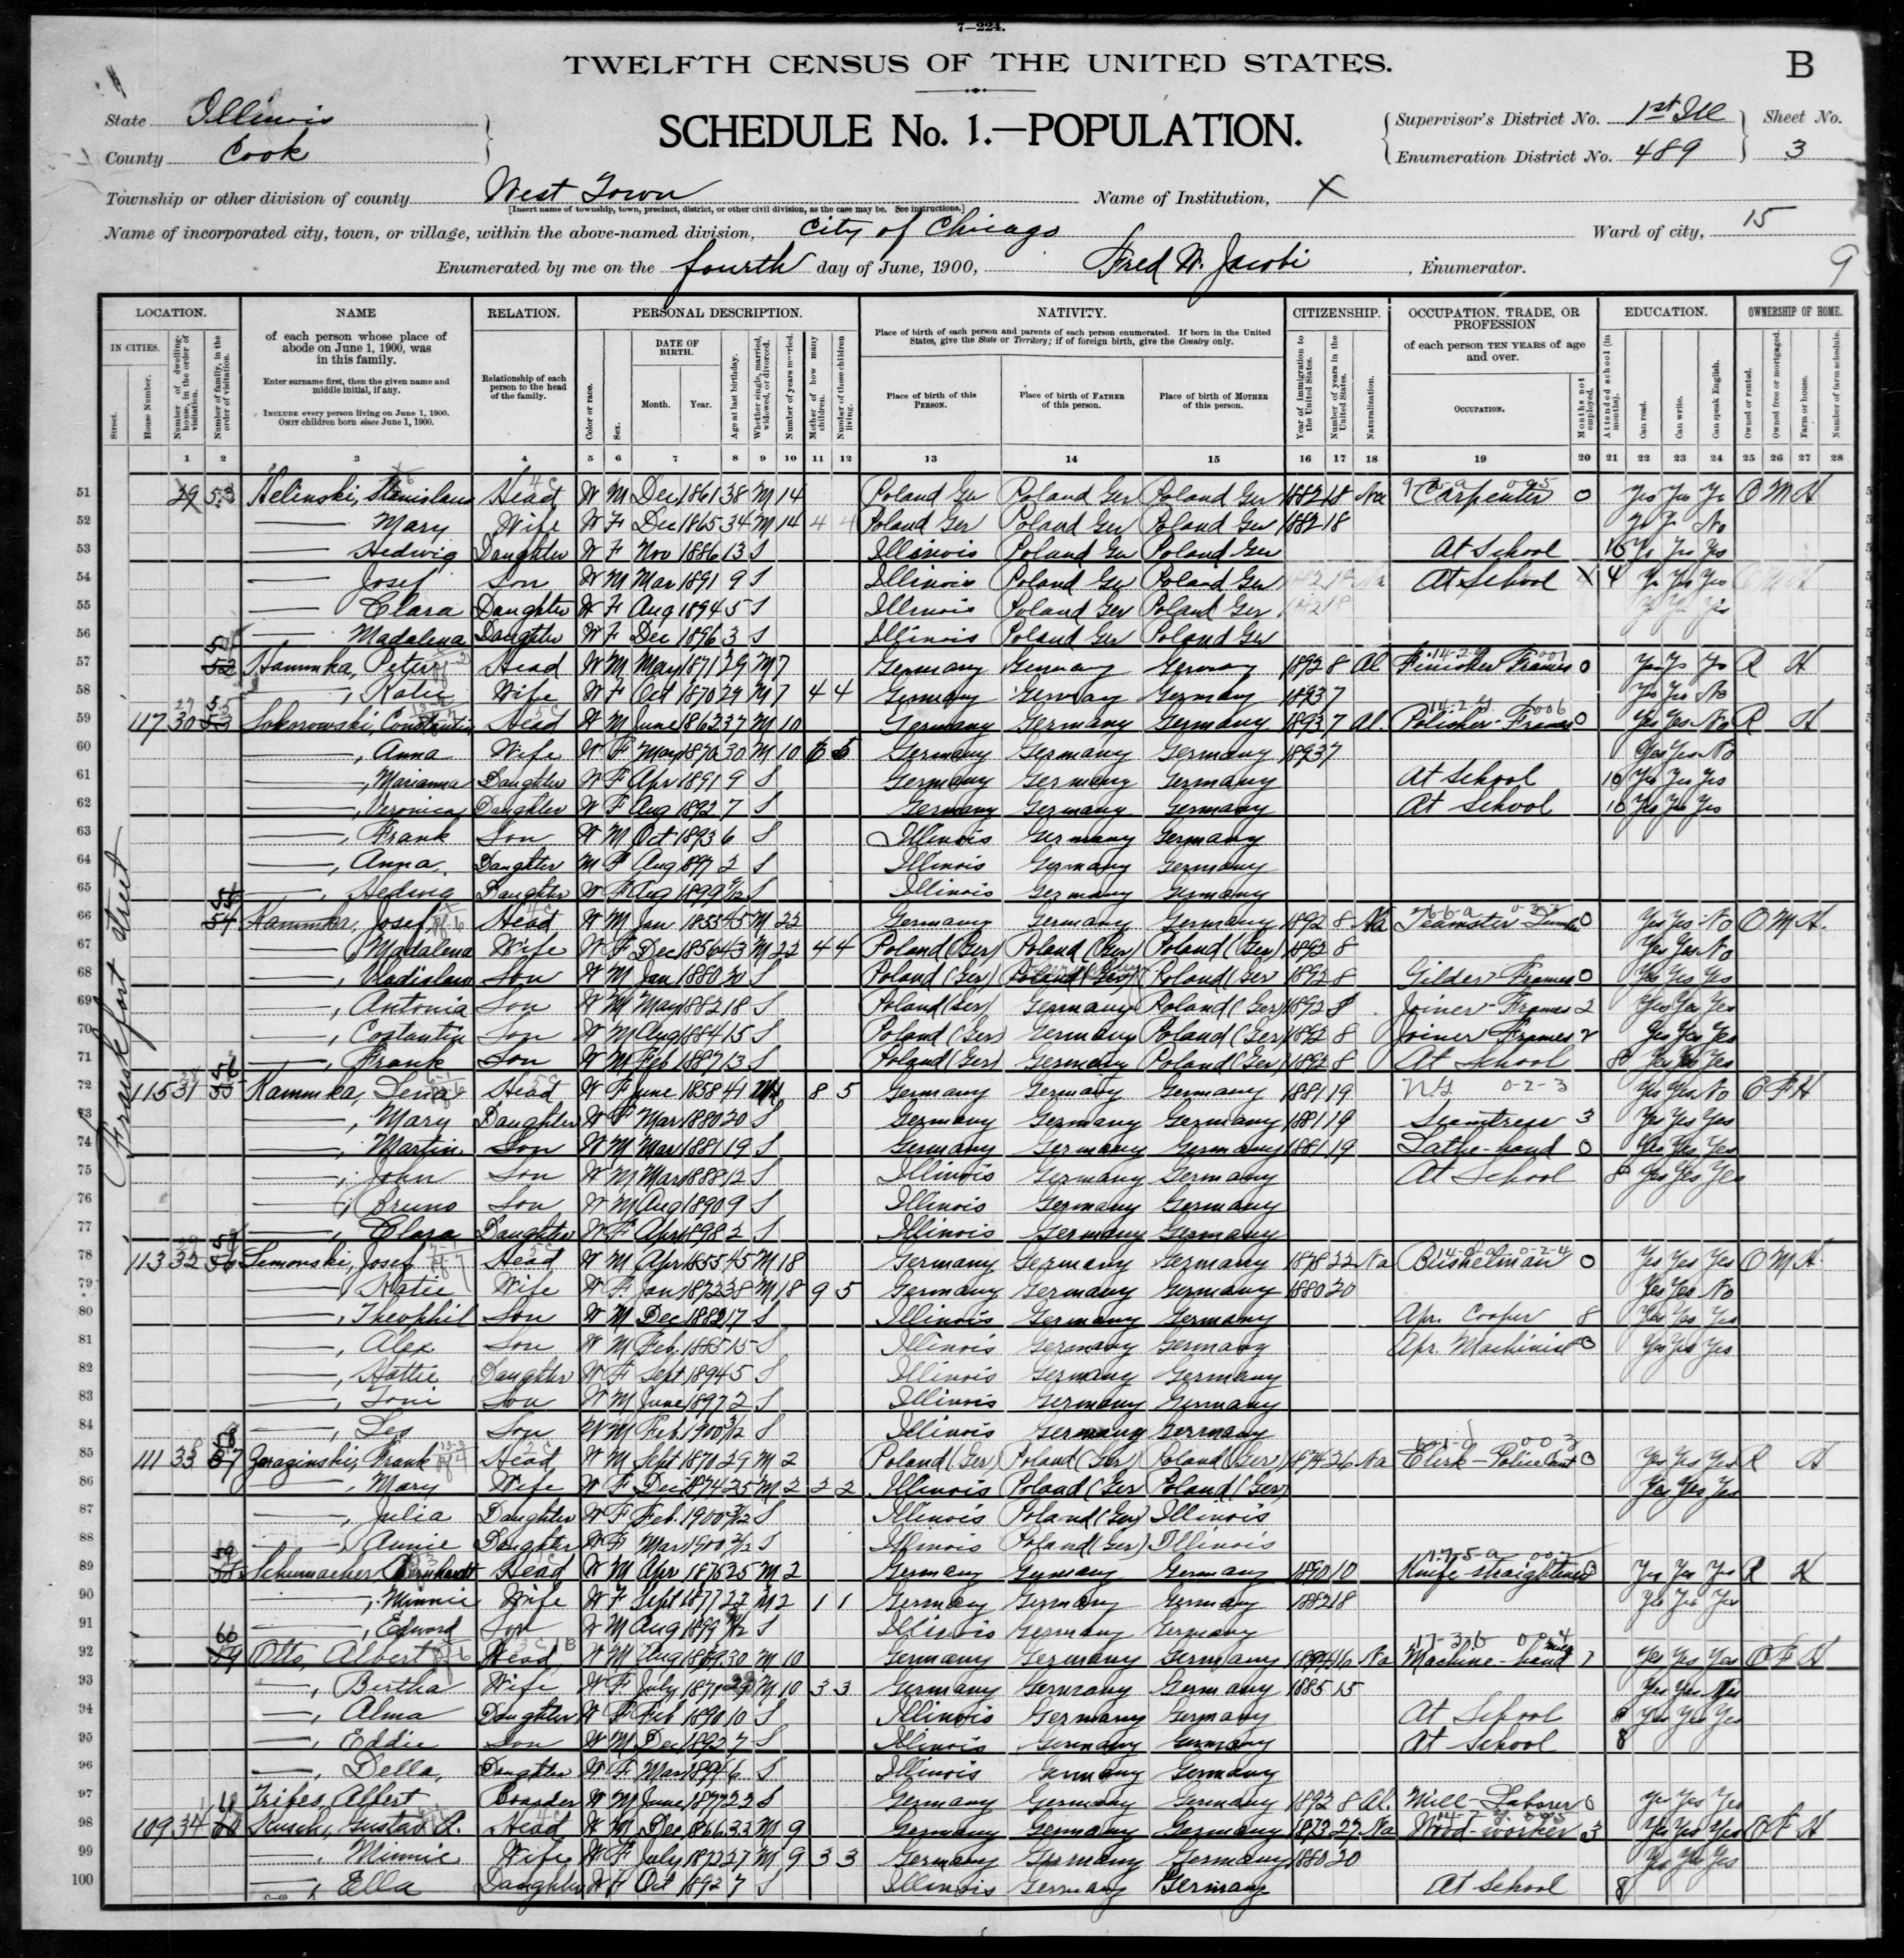 Illinois: COOK County, Enumeration District 489, Sheet No. 3B